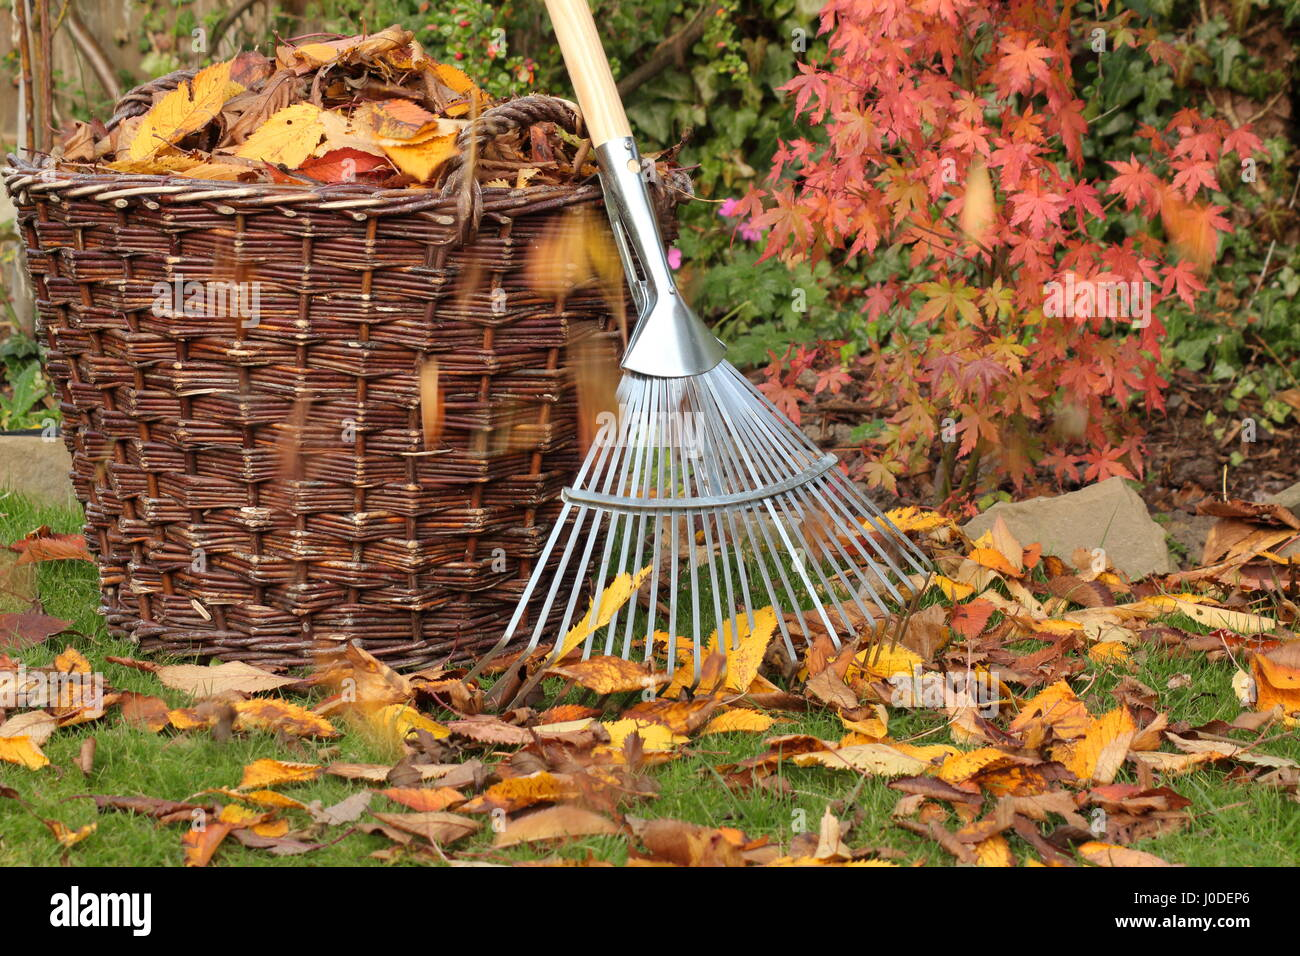 Fallen leaves cleared from a garden lawn into a woven basket on a bright autumn day, UK - Stock Image